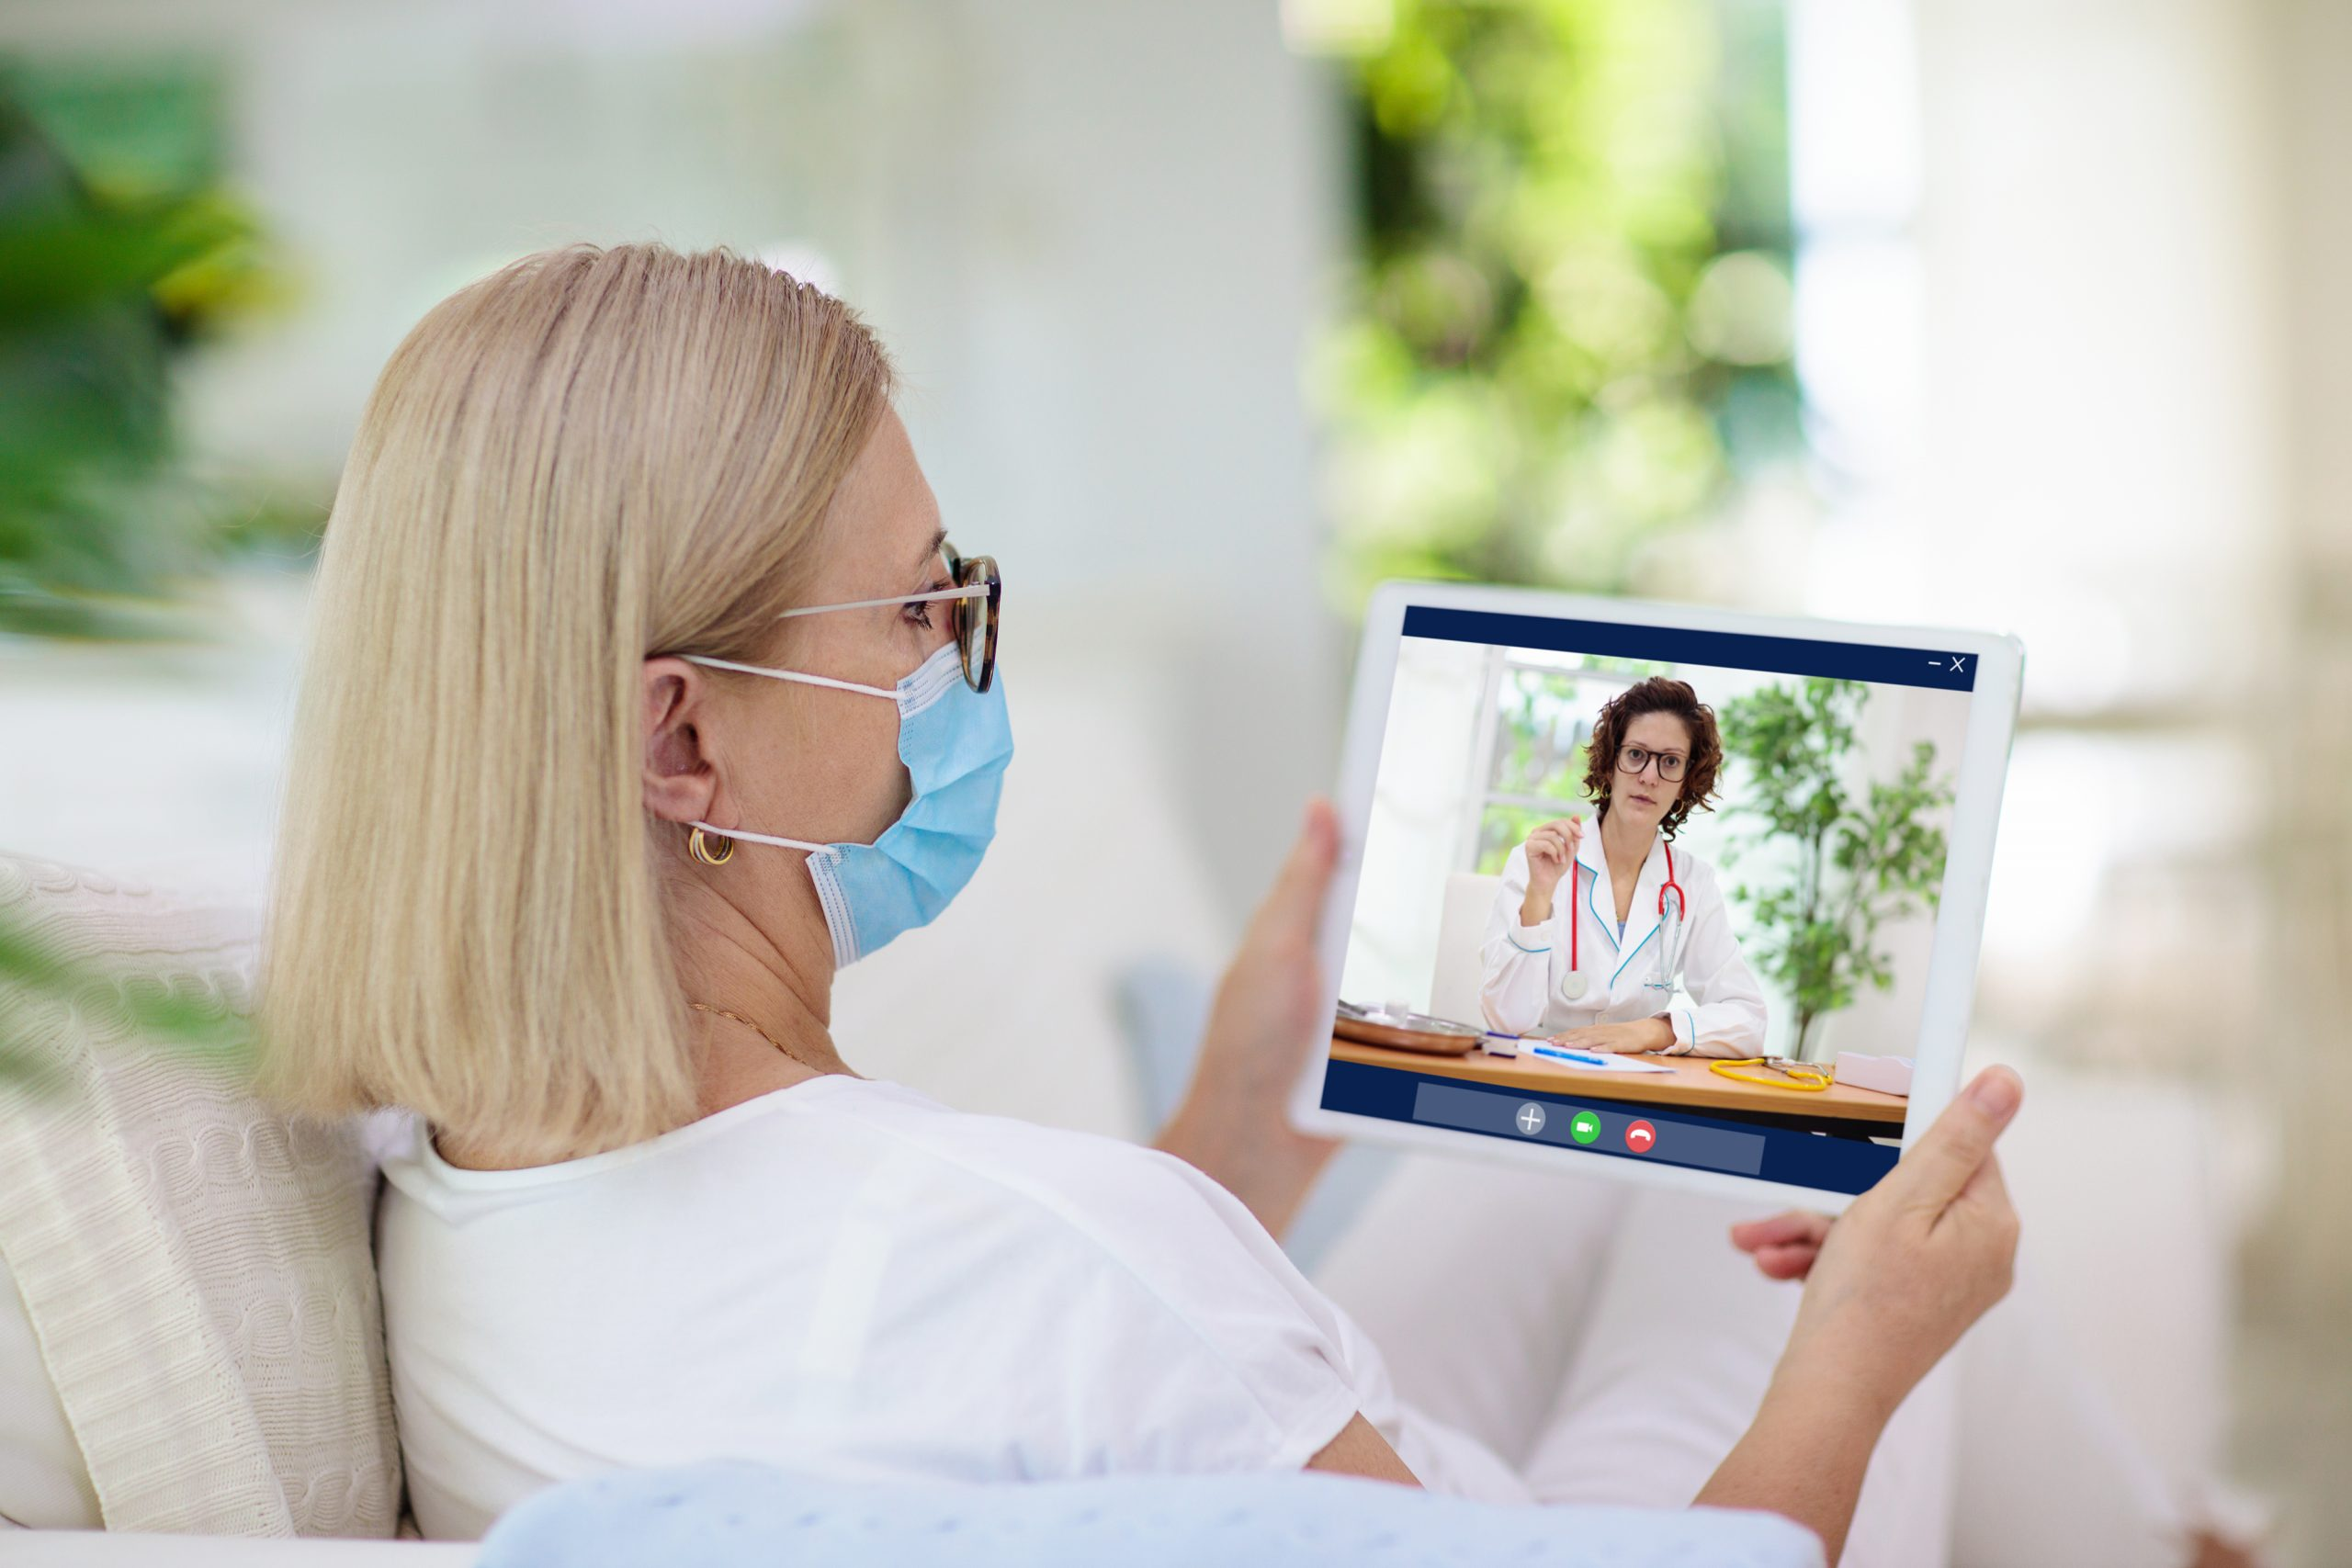 Masked female talking to a doctor virtually